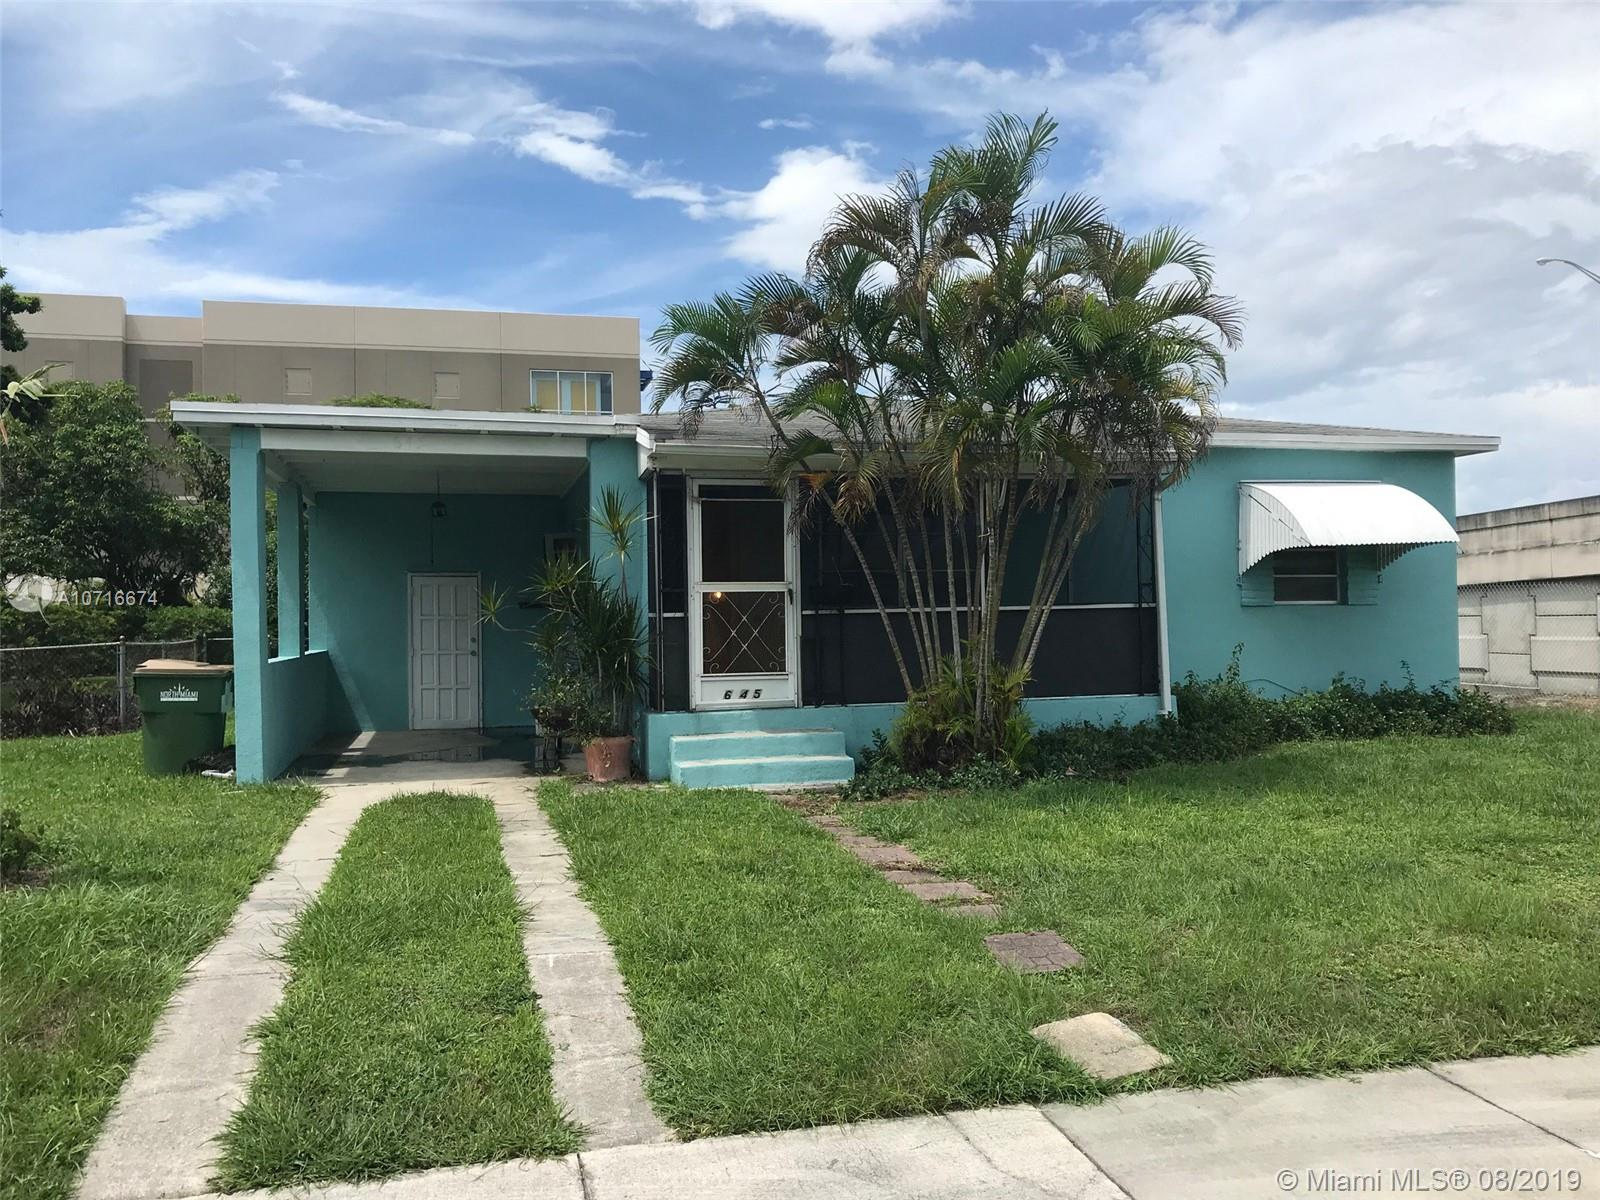 645 NW 132nd St, North Miami, Florida 33168, 2 Bedrooms Bedrooms, ,1 BathroomBathrooms,Residential,For Sale,645 NW 132nd St,A10716674